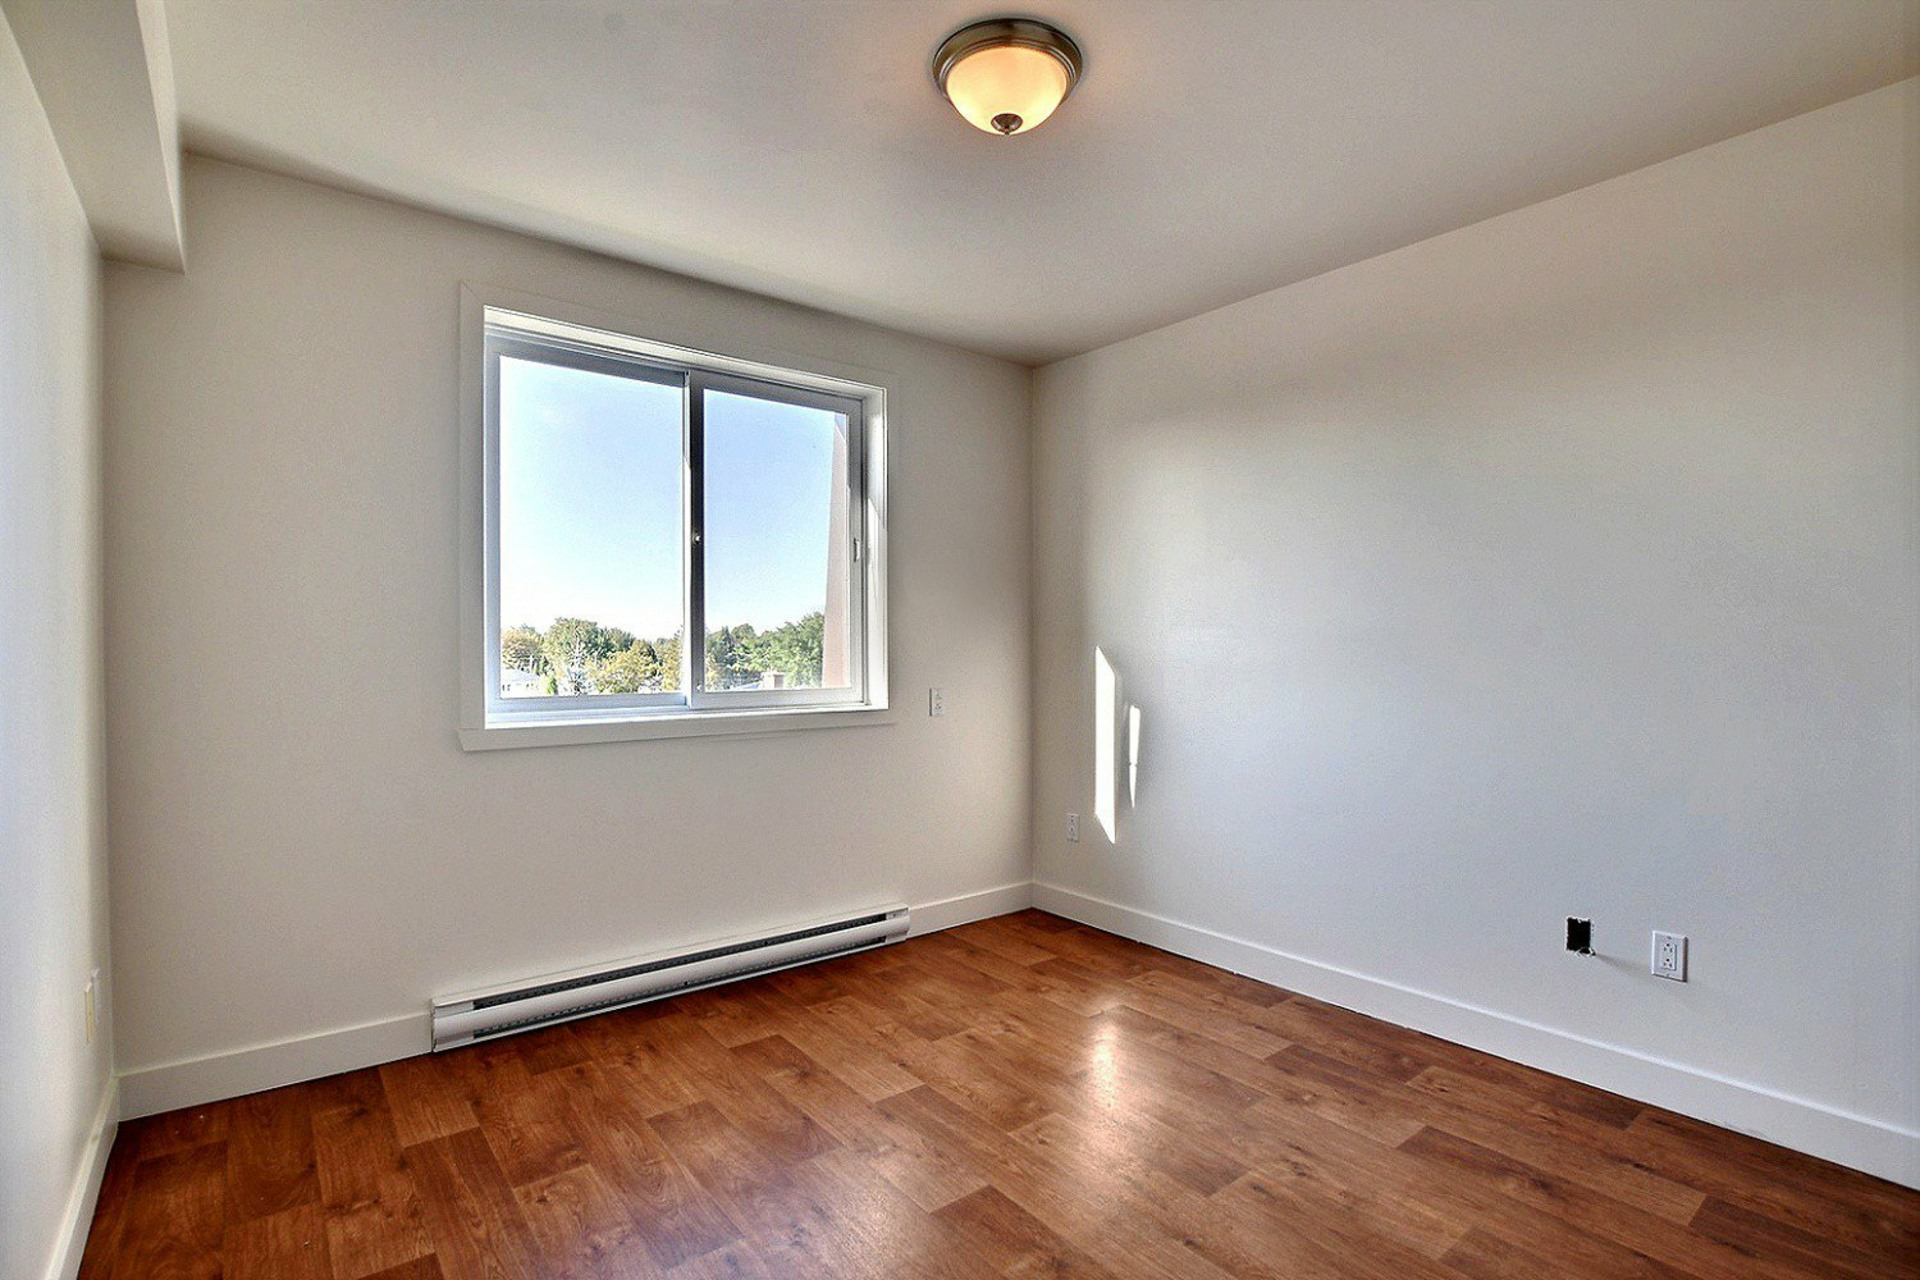 image 11 - Apartment For rent Brossard - 7 rooms